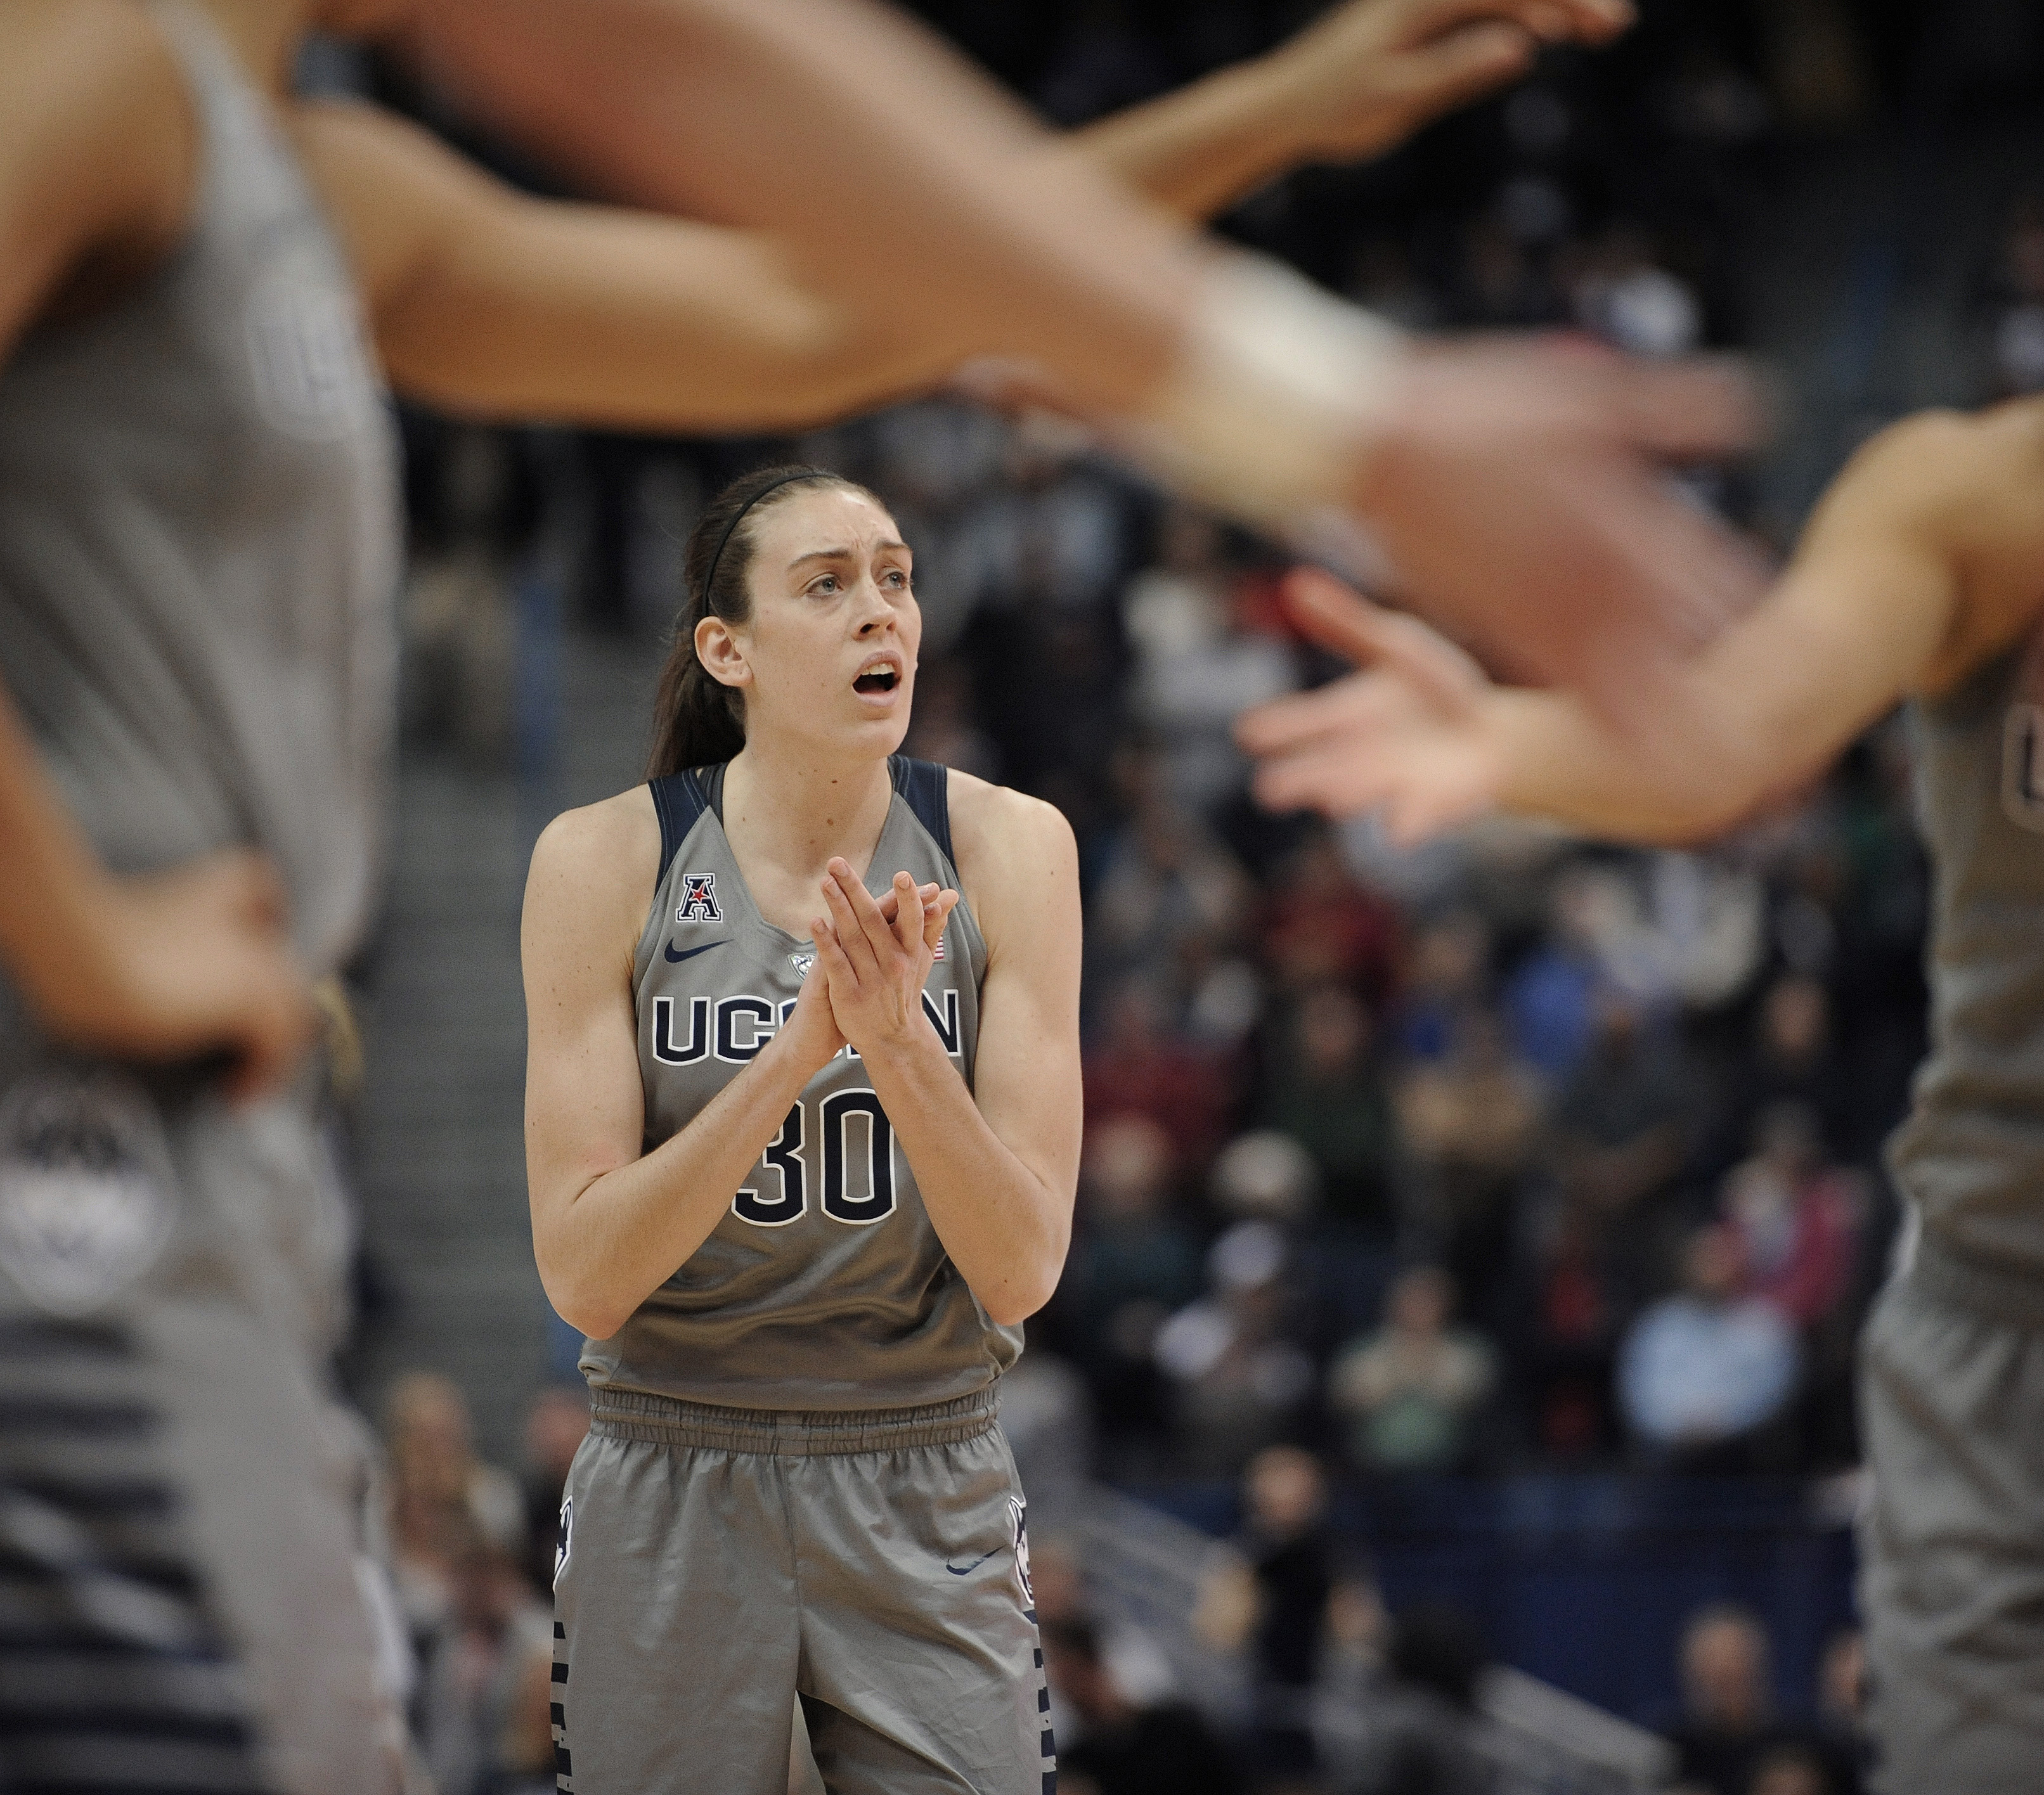 FILE - In this Nov. 28, 2015, file photo, Connecticut's Breanna Stewart reacts during the first half of an NCAA college basketball game, in Hartford, Conn. Two-time national player of the year Breanna Stewart takes seriously her role as a mentor to the Hu